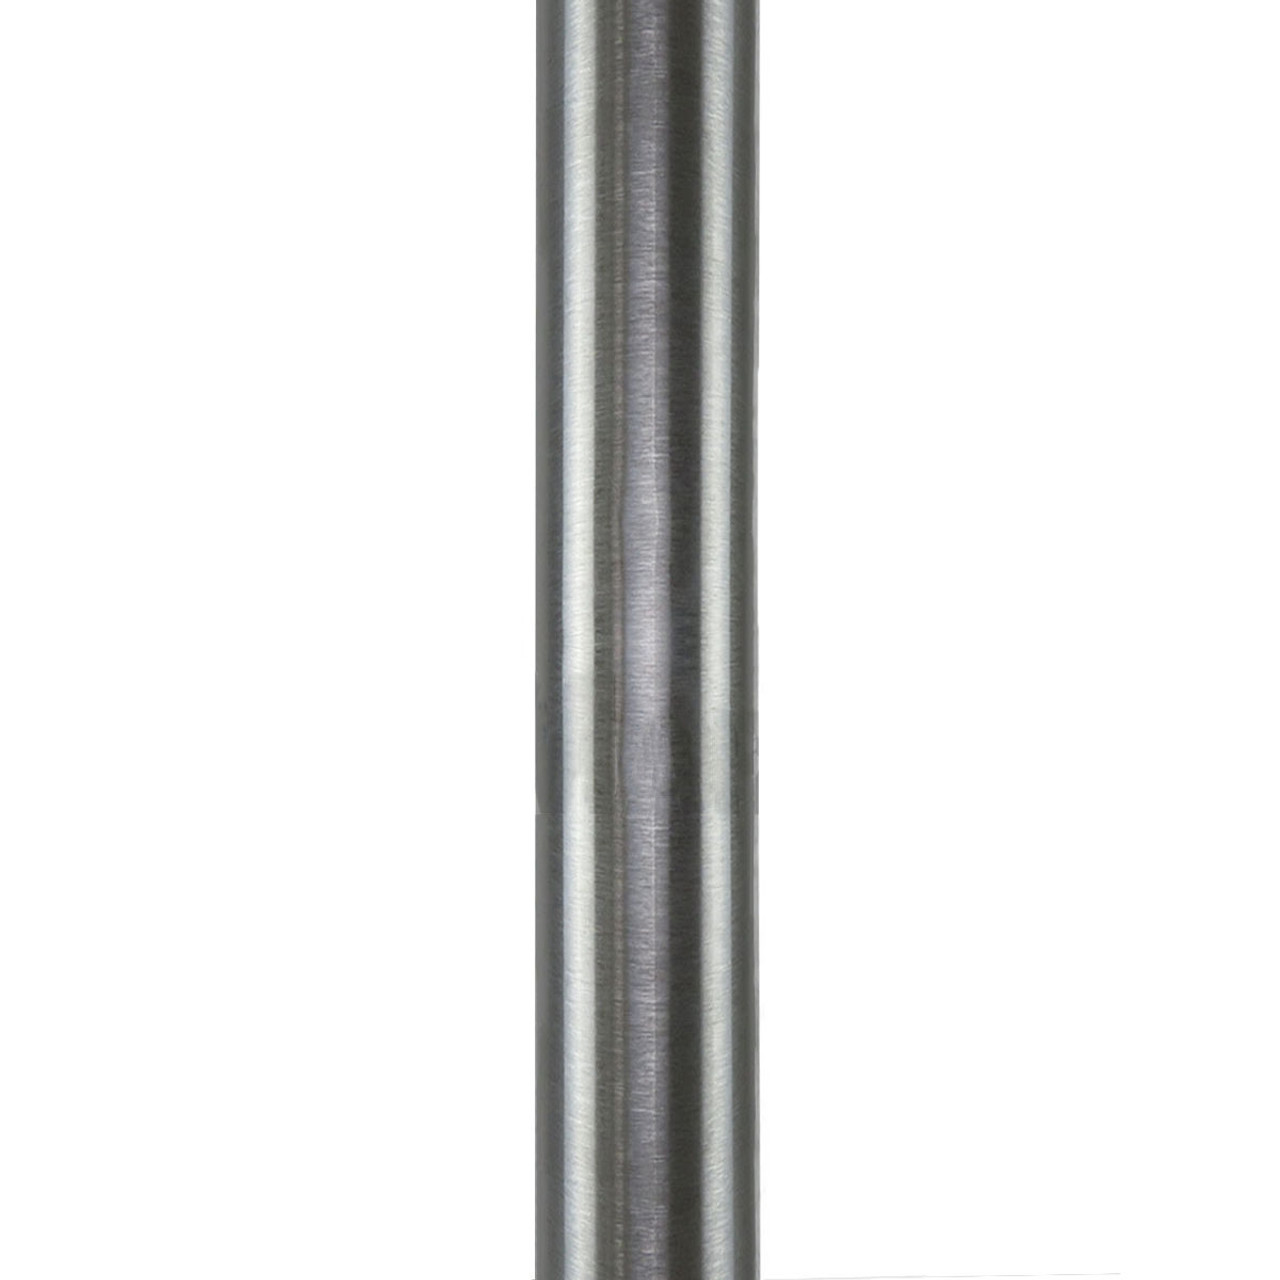 Lamp Post Accessories Collection Cross Arm Accessory diameter 9 Inch Black finis